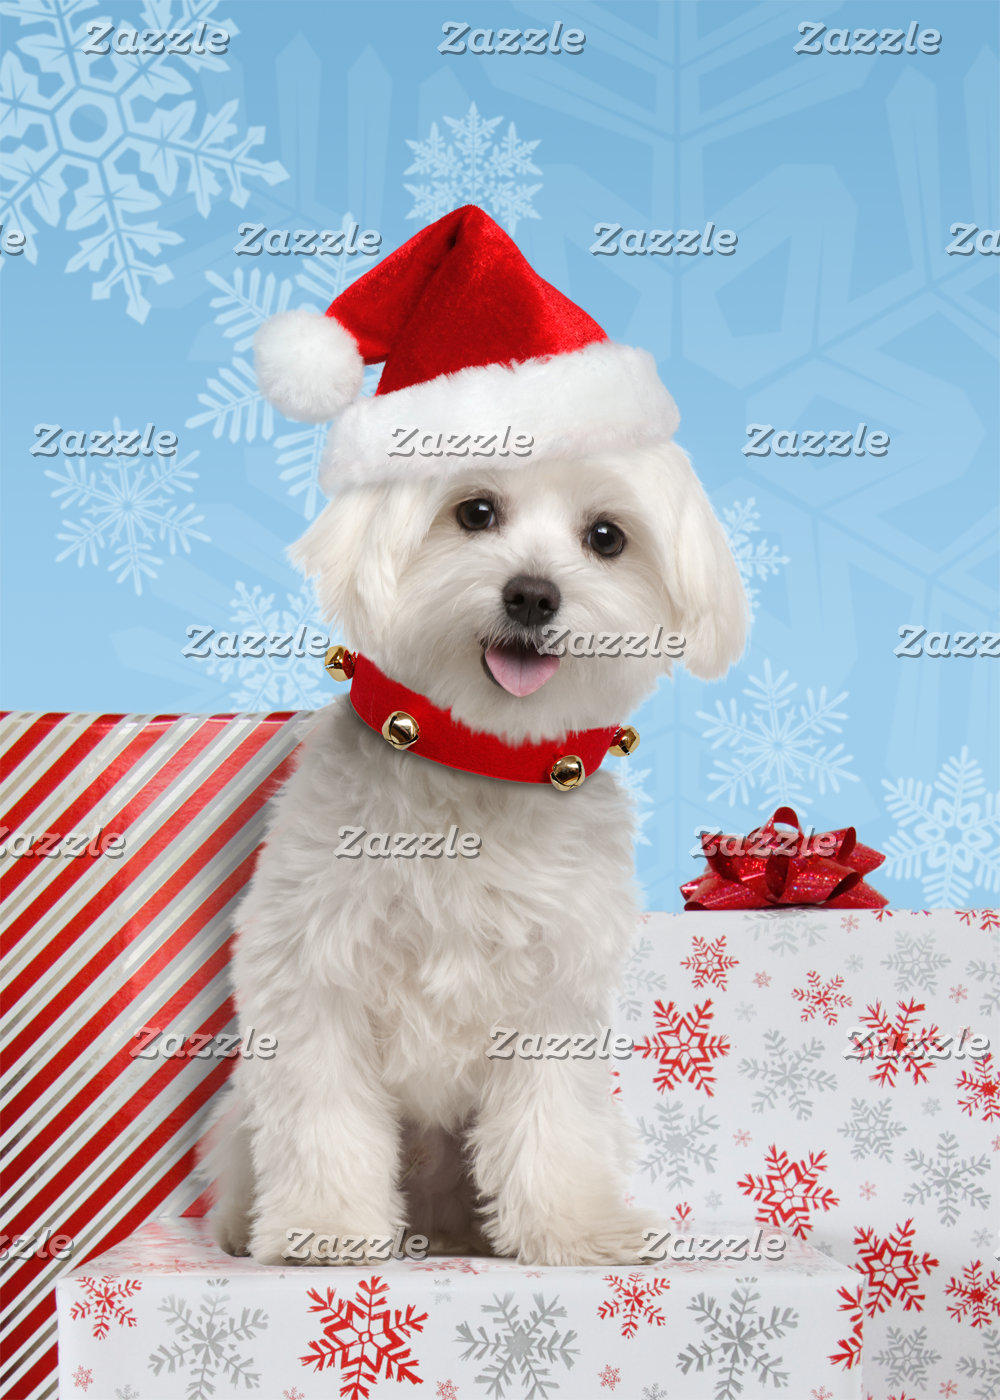 Maltese Puppy Christmas Cards and Gifts